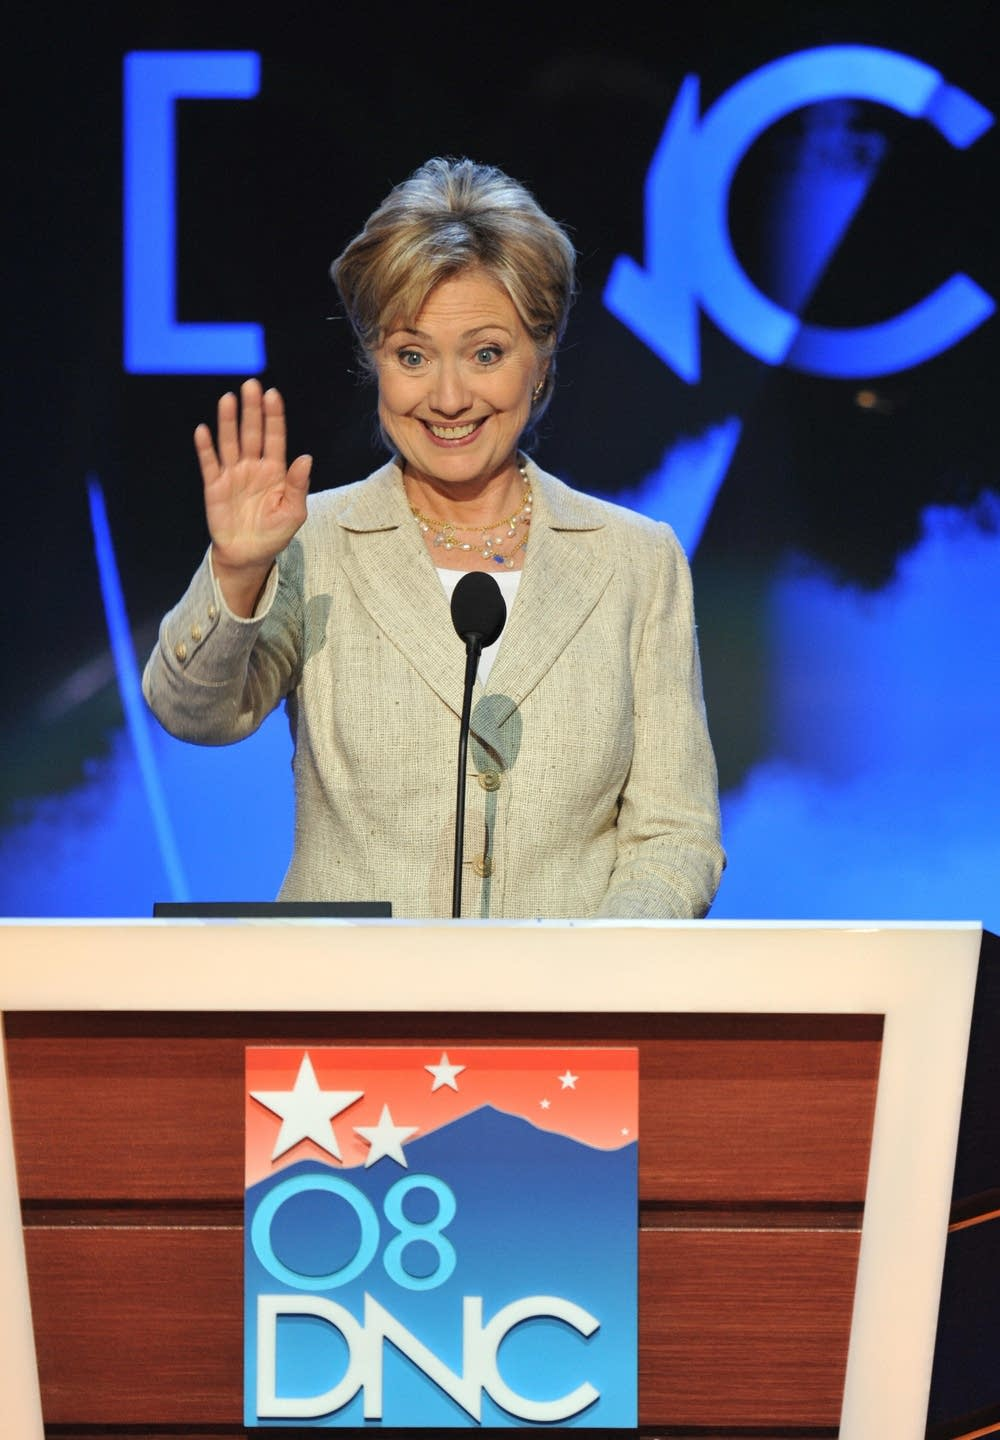 Senator Hillary Clinton on the DNC stage